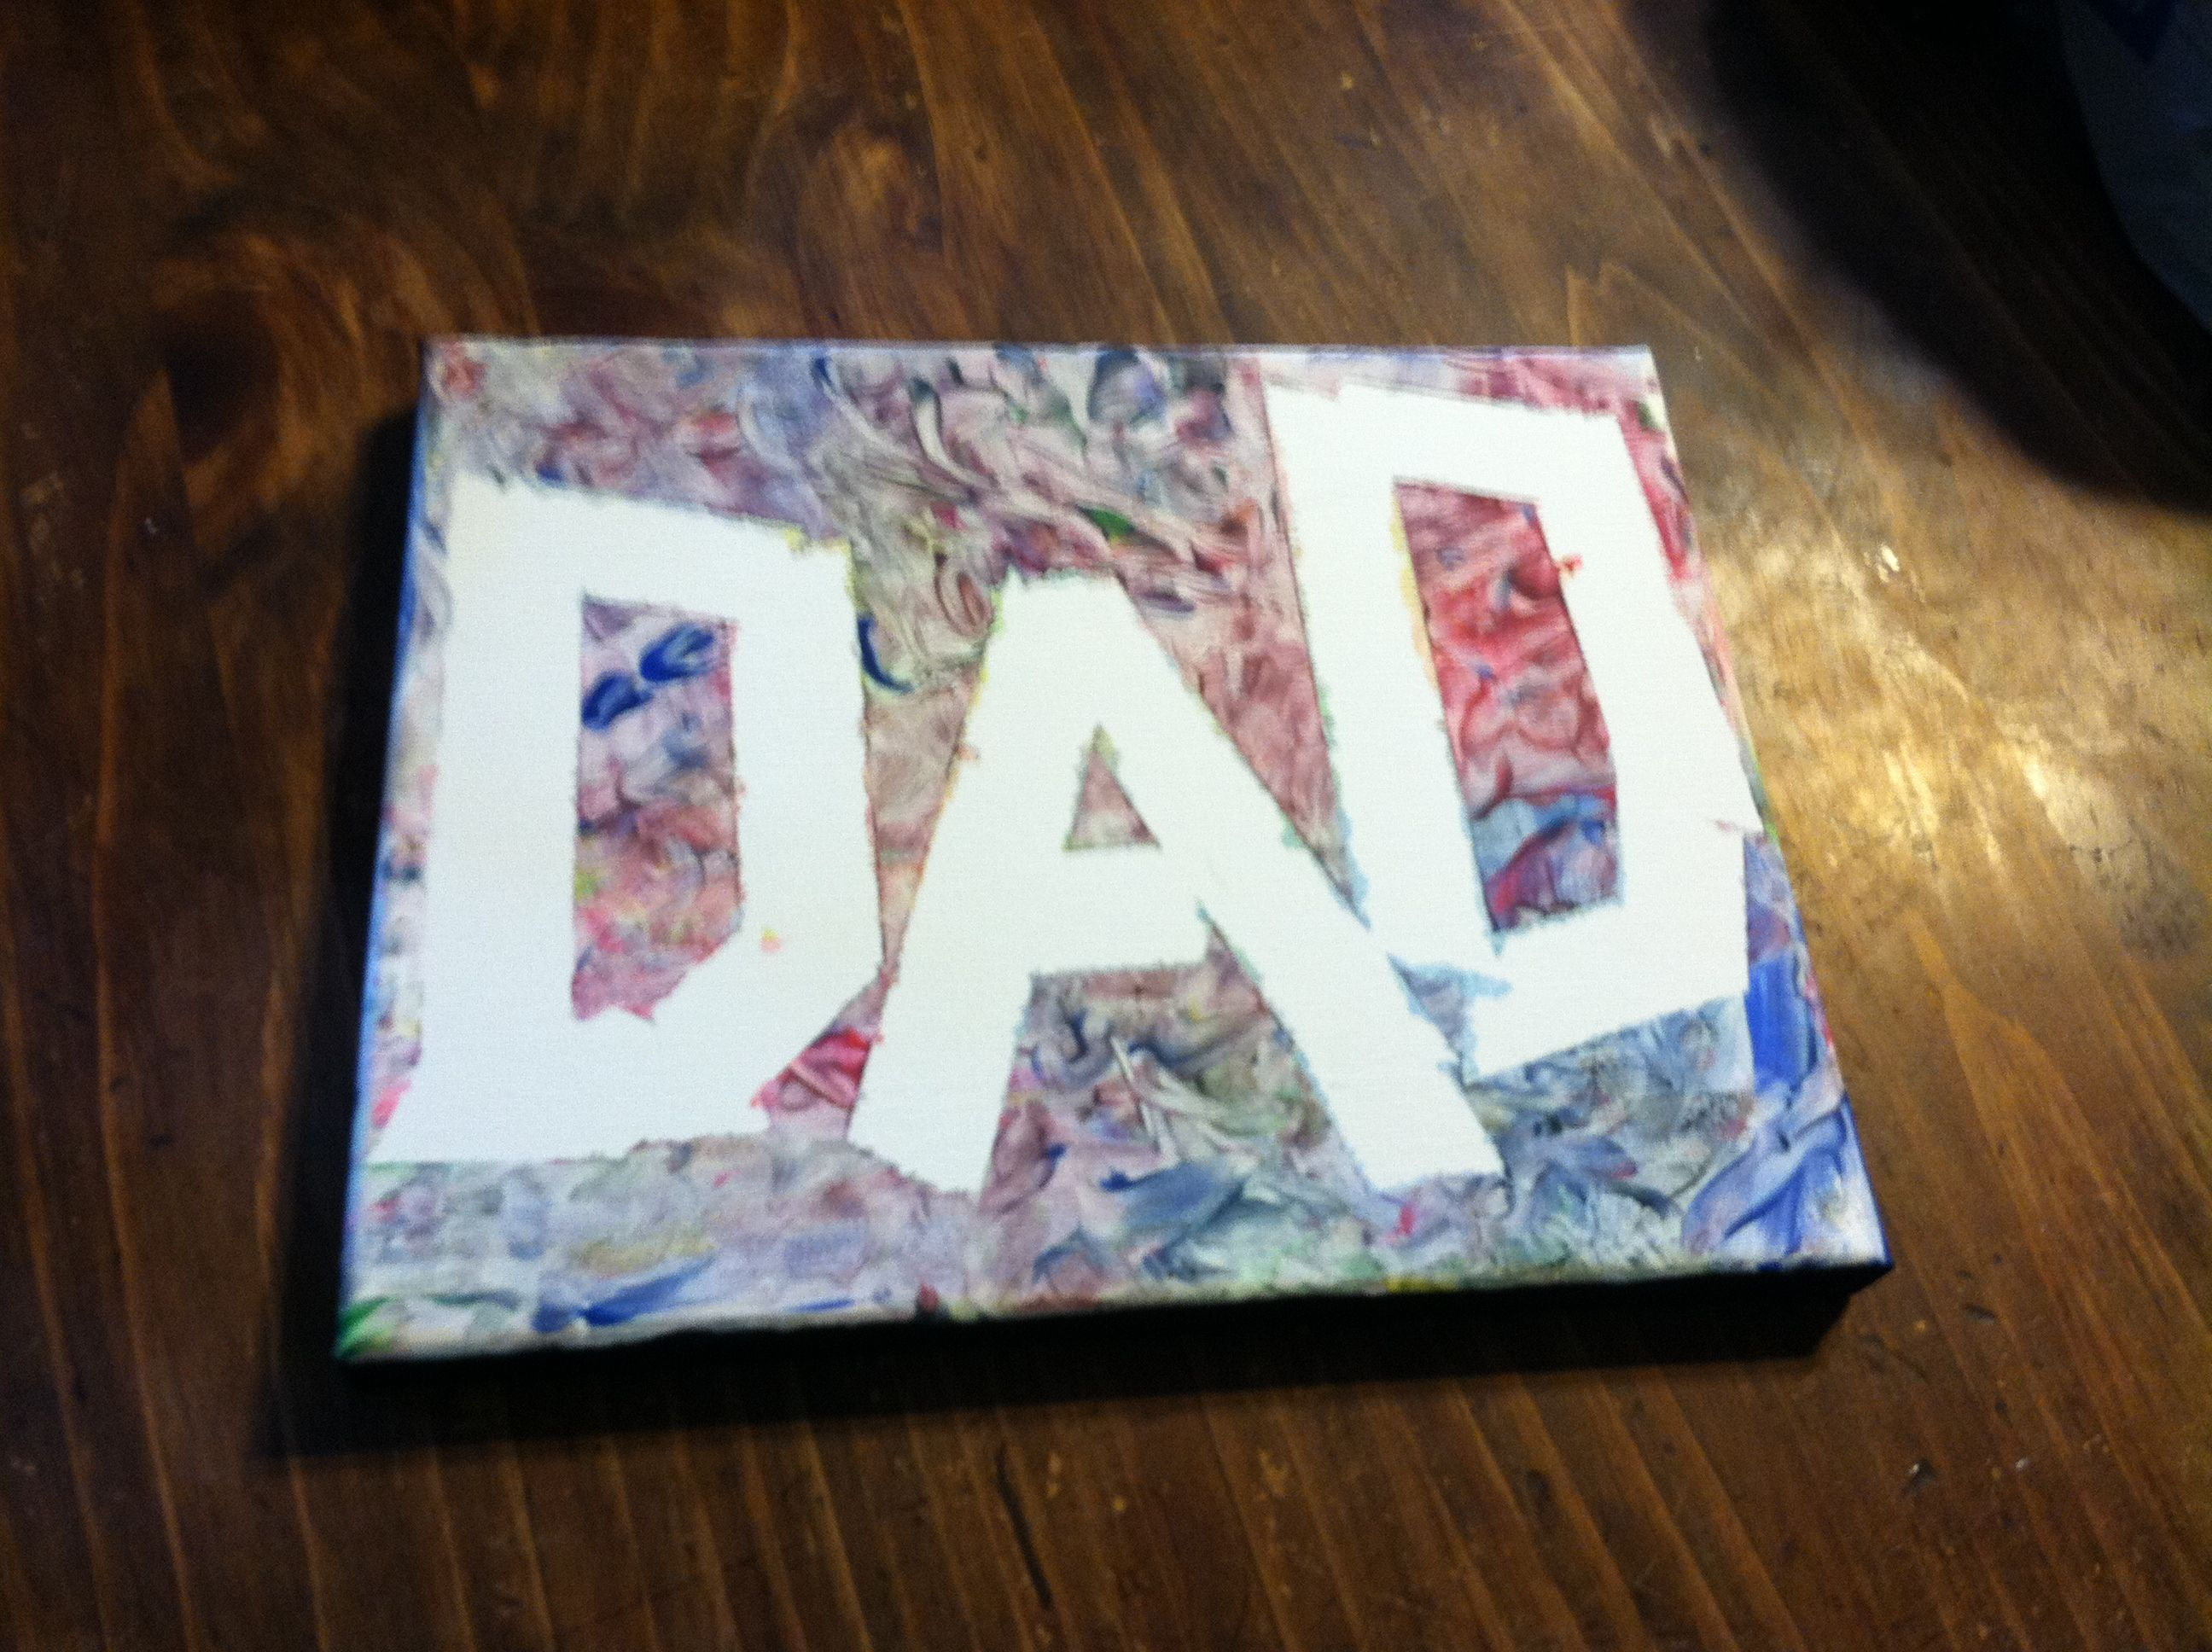 Fathers Day Present From Baby Finger Paint And Tape